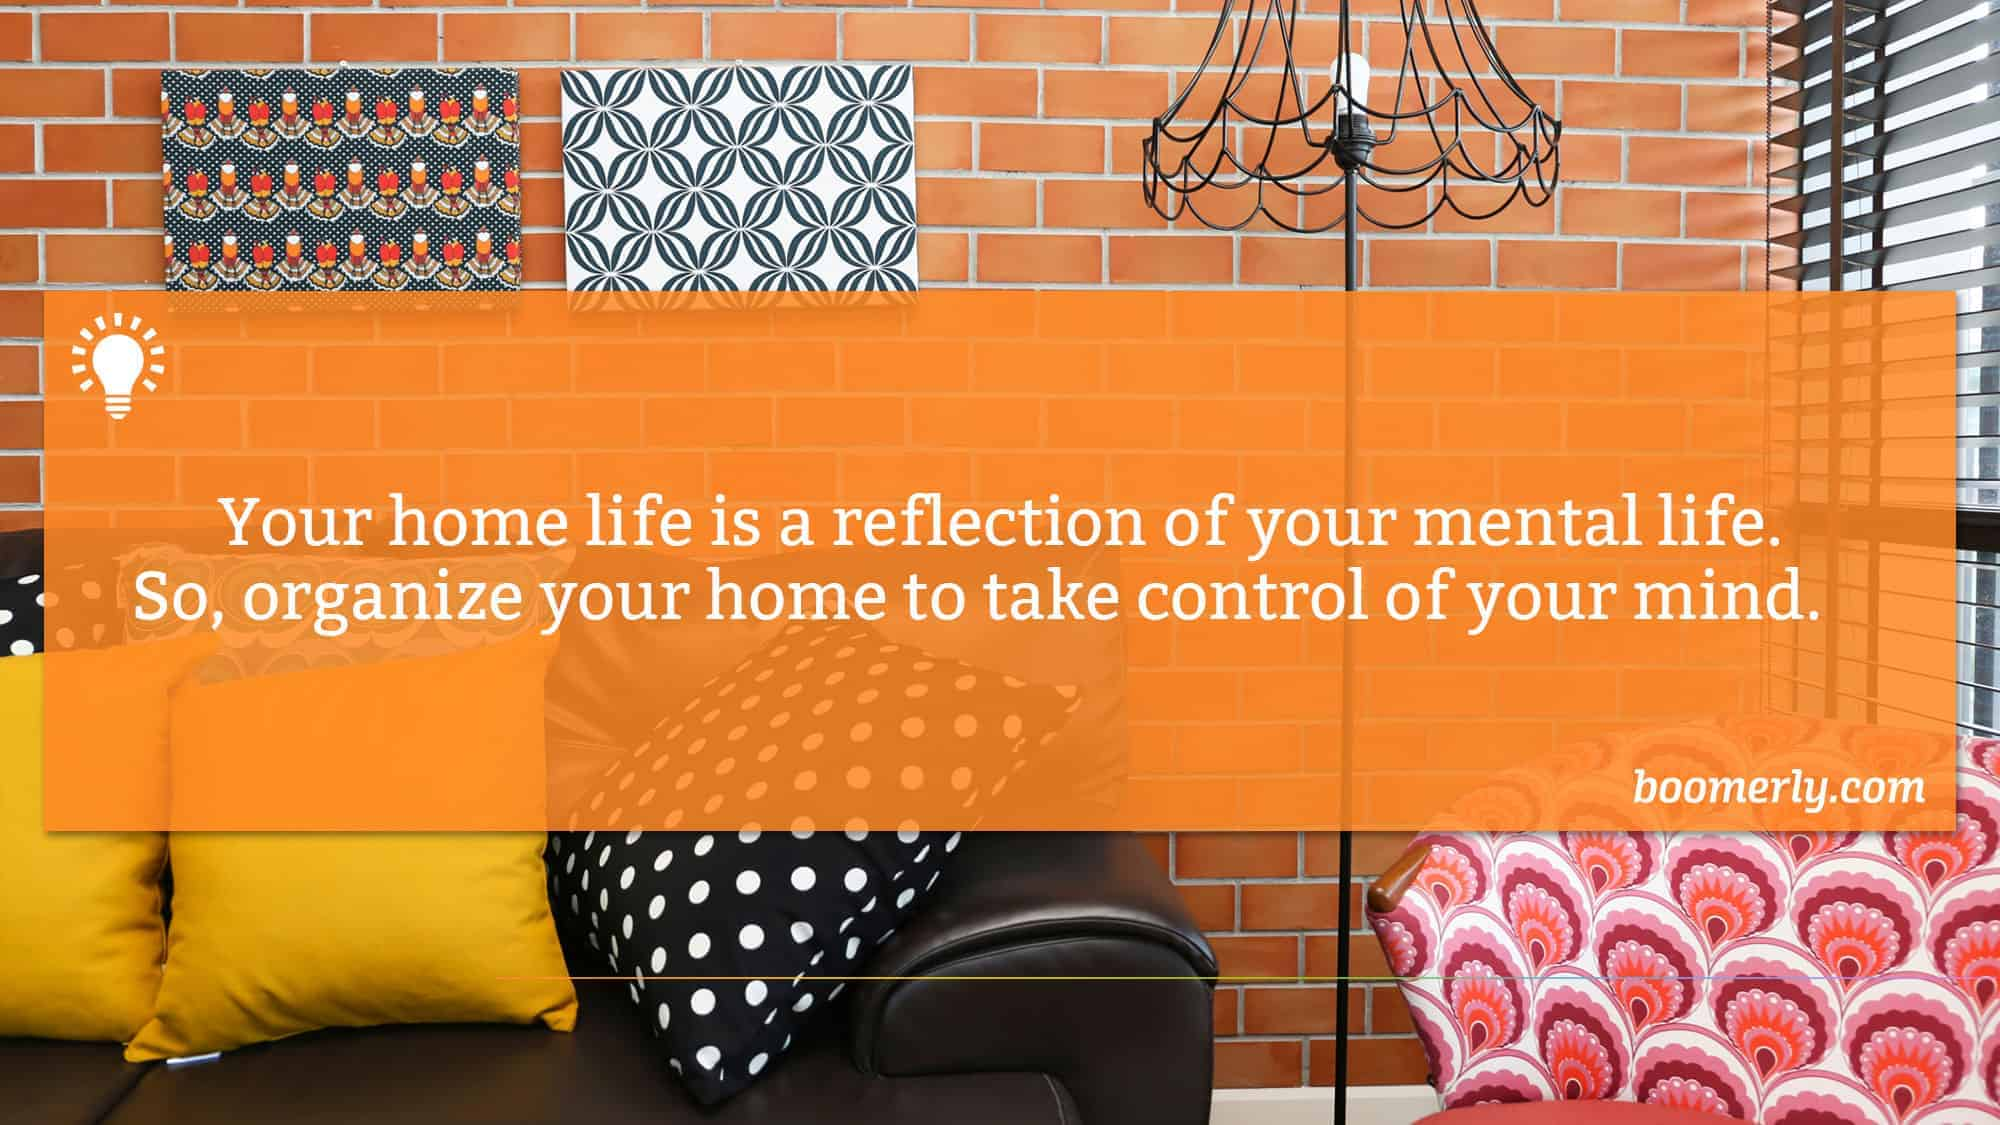 Your home life is a reflection of your mental life. So, organize your home to take control of your mind.